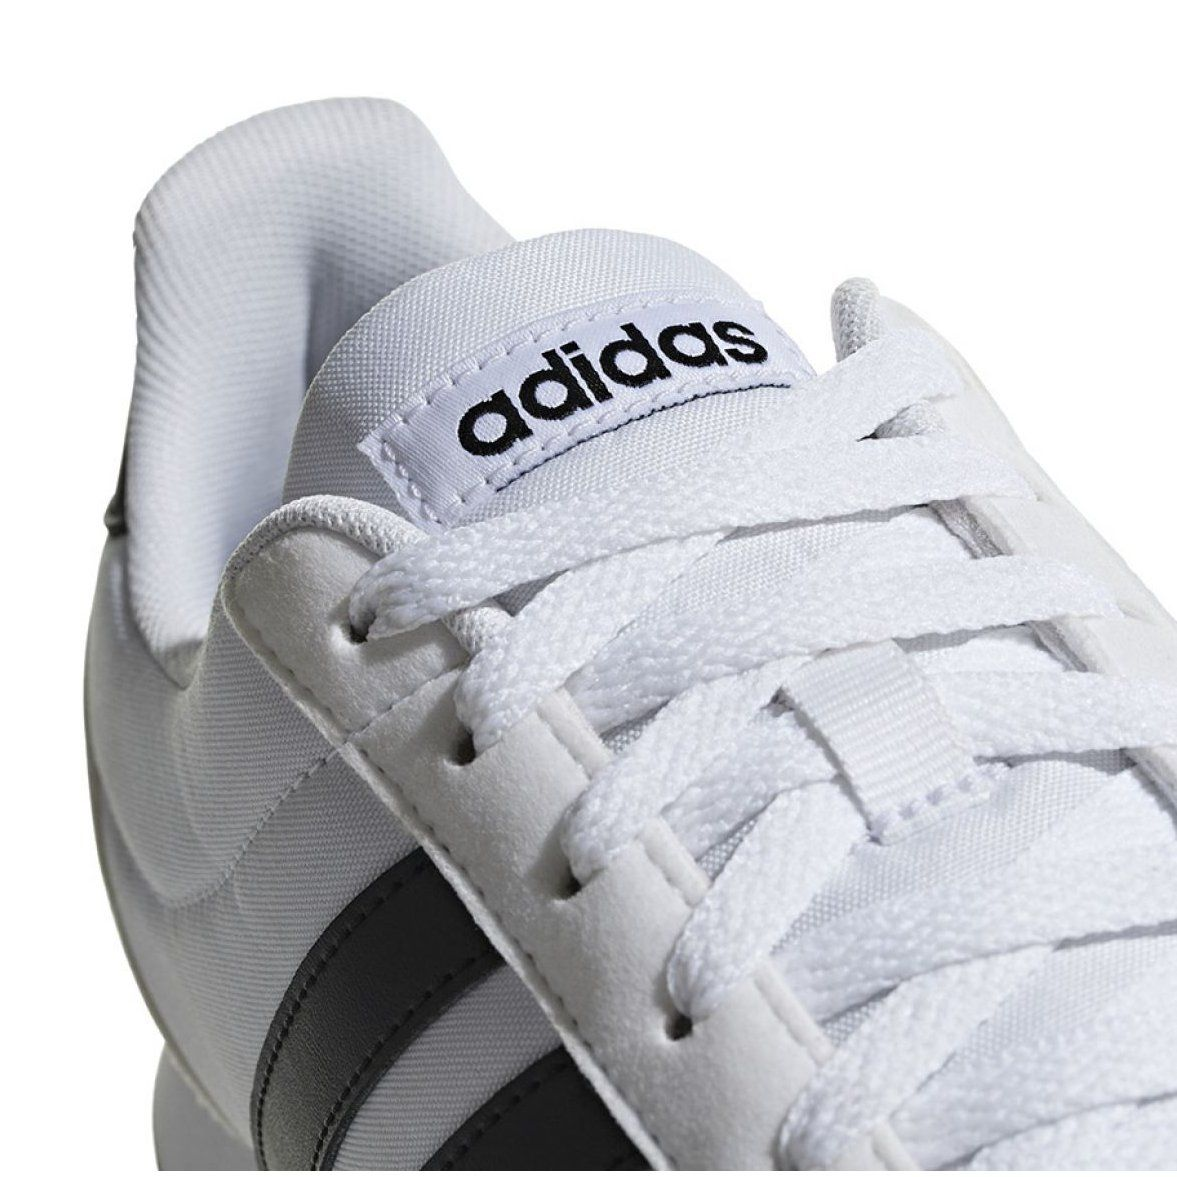 Buty Adidas V Racer 2 0 M B75796 Biale Adidas Adidas Superstar Sneaker Sneakers